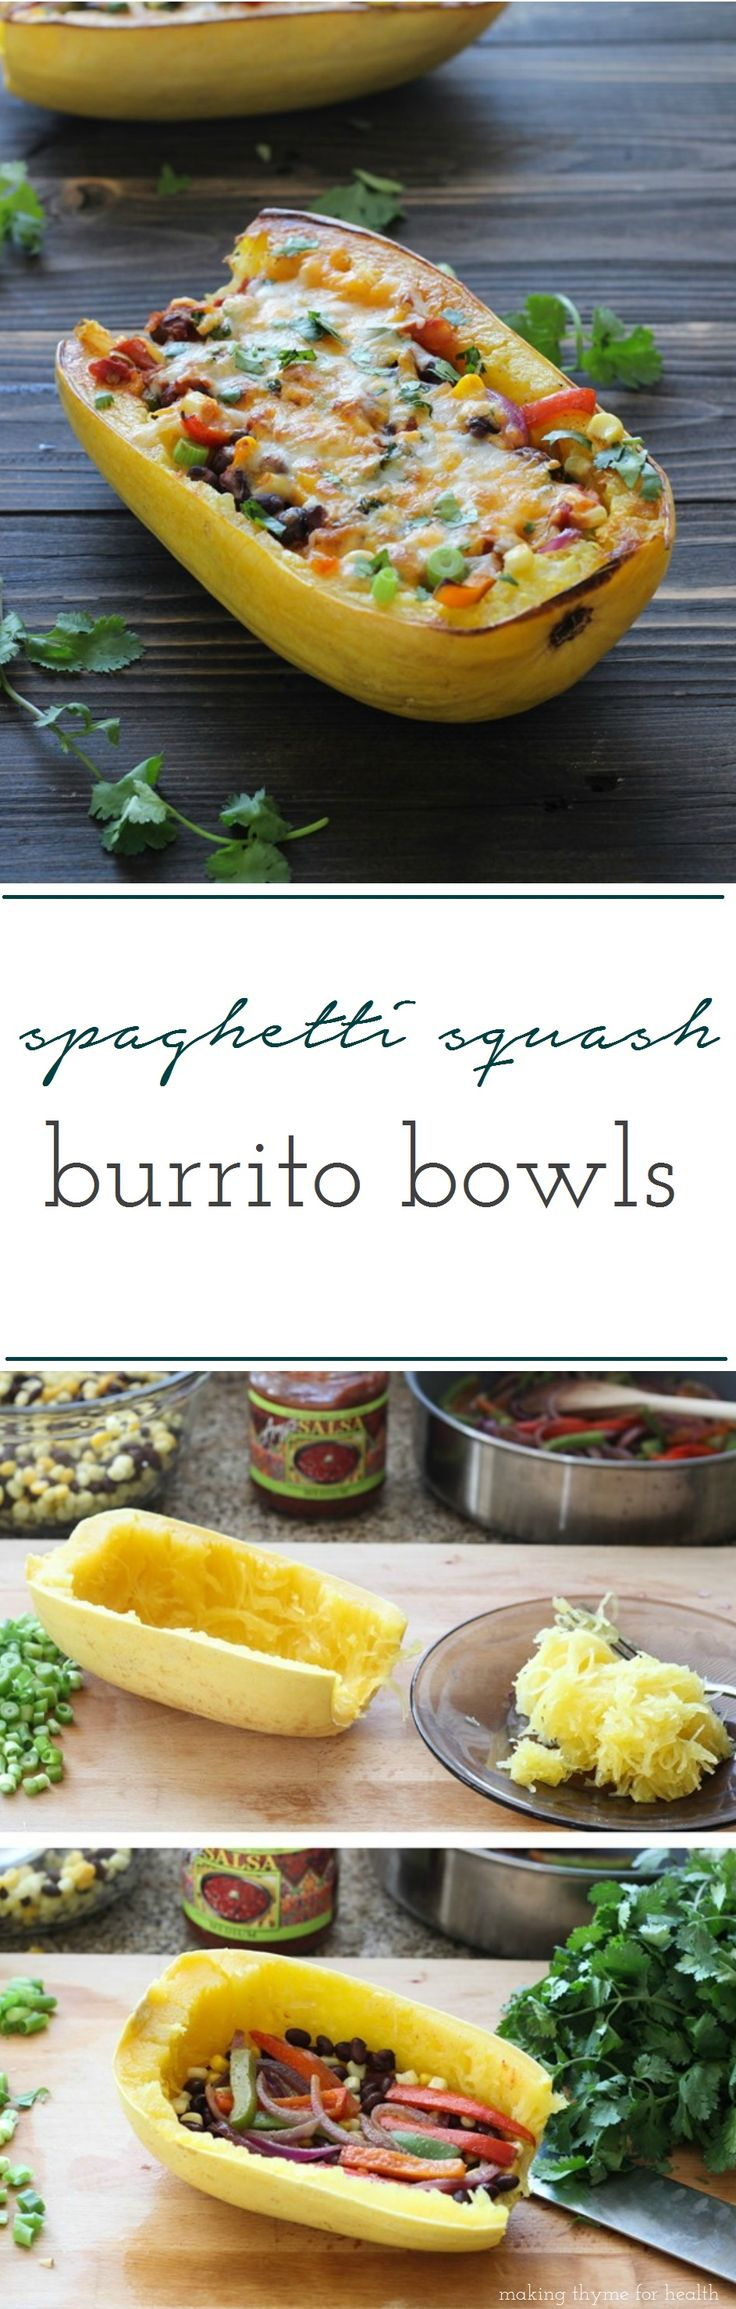 Spaghetti Squash Burrito Bowls- a healthy meal that's easy and delicious! #lowcarb #cleaneating #glutenfree